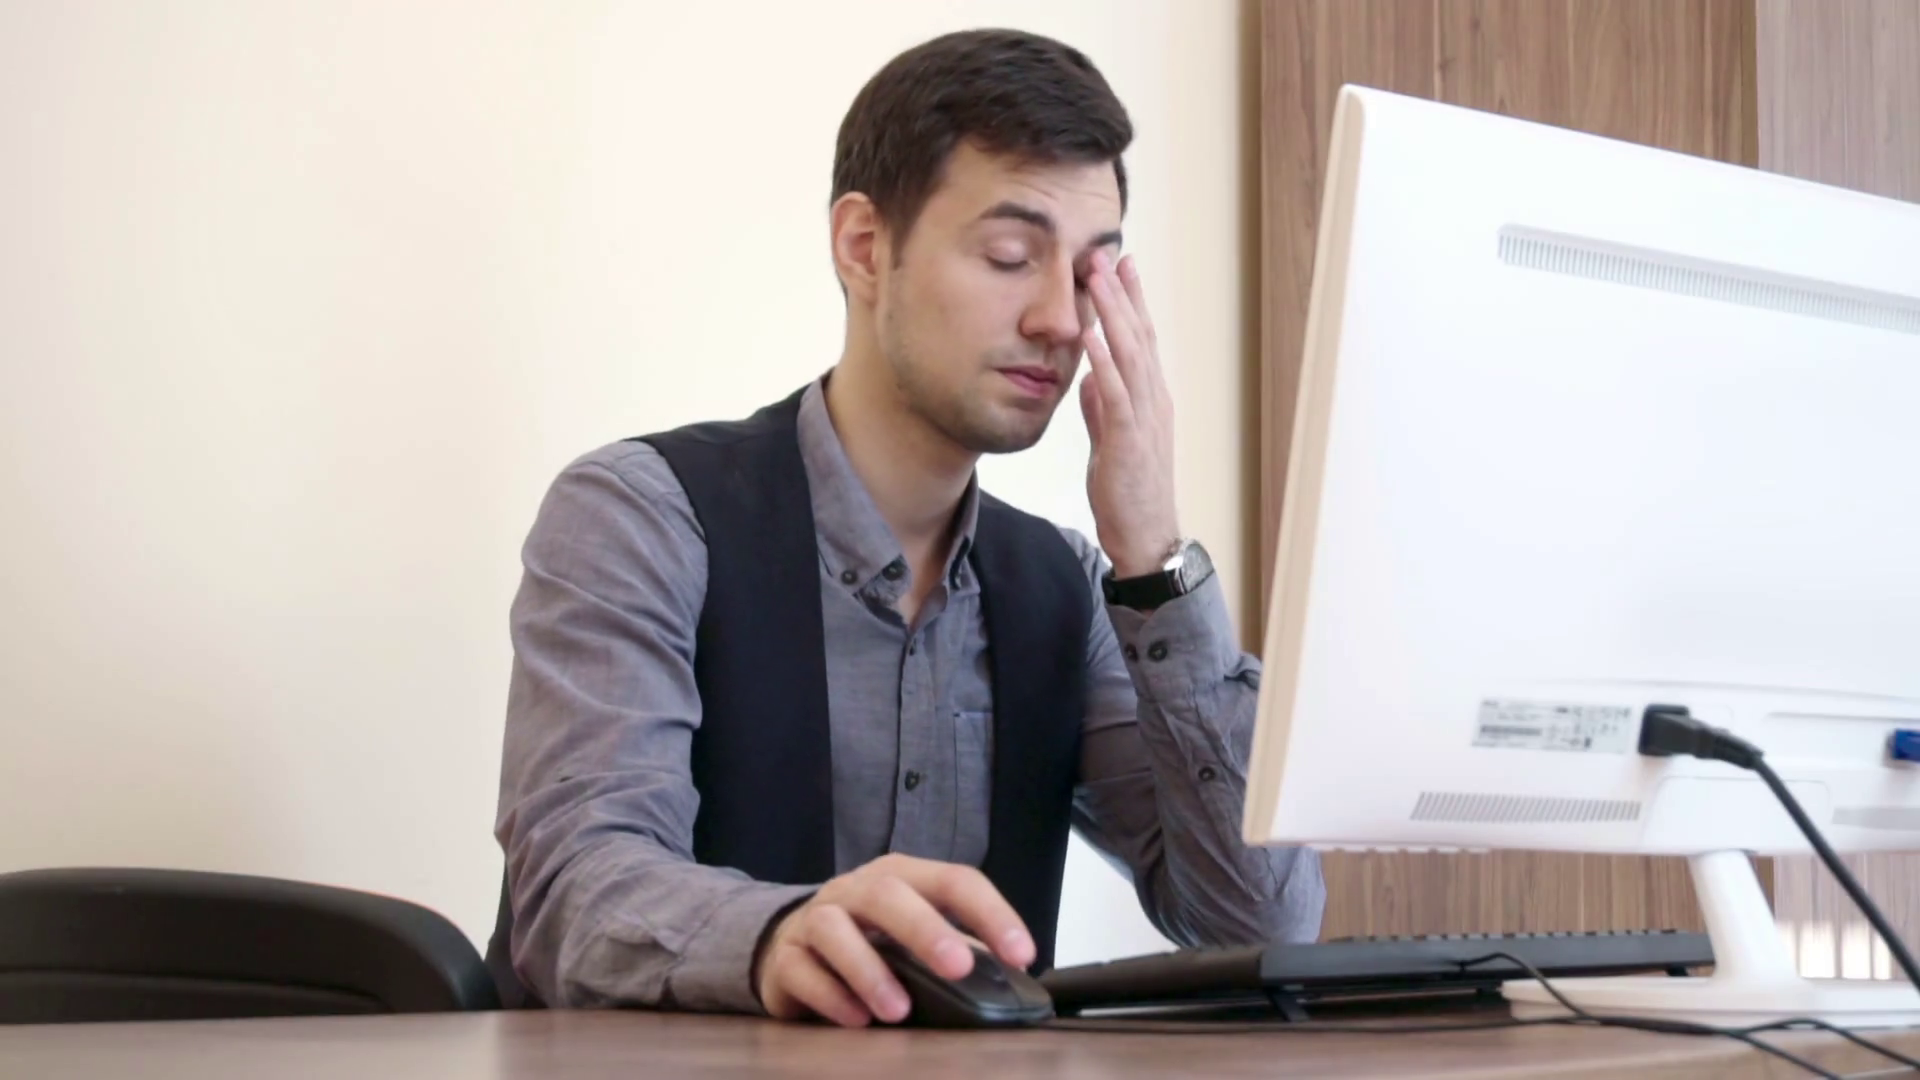 tired-man-working-at-the-computer-look-at-his-watch-and-leave_bqdpgx_c_thumbnail-full01.png